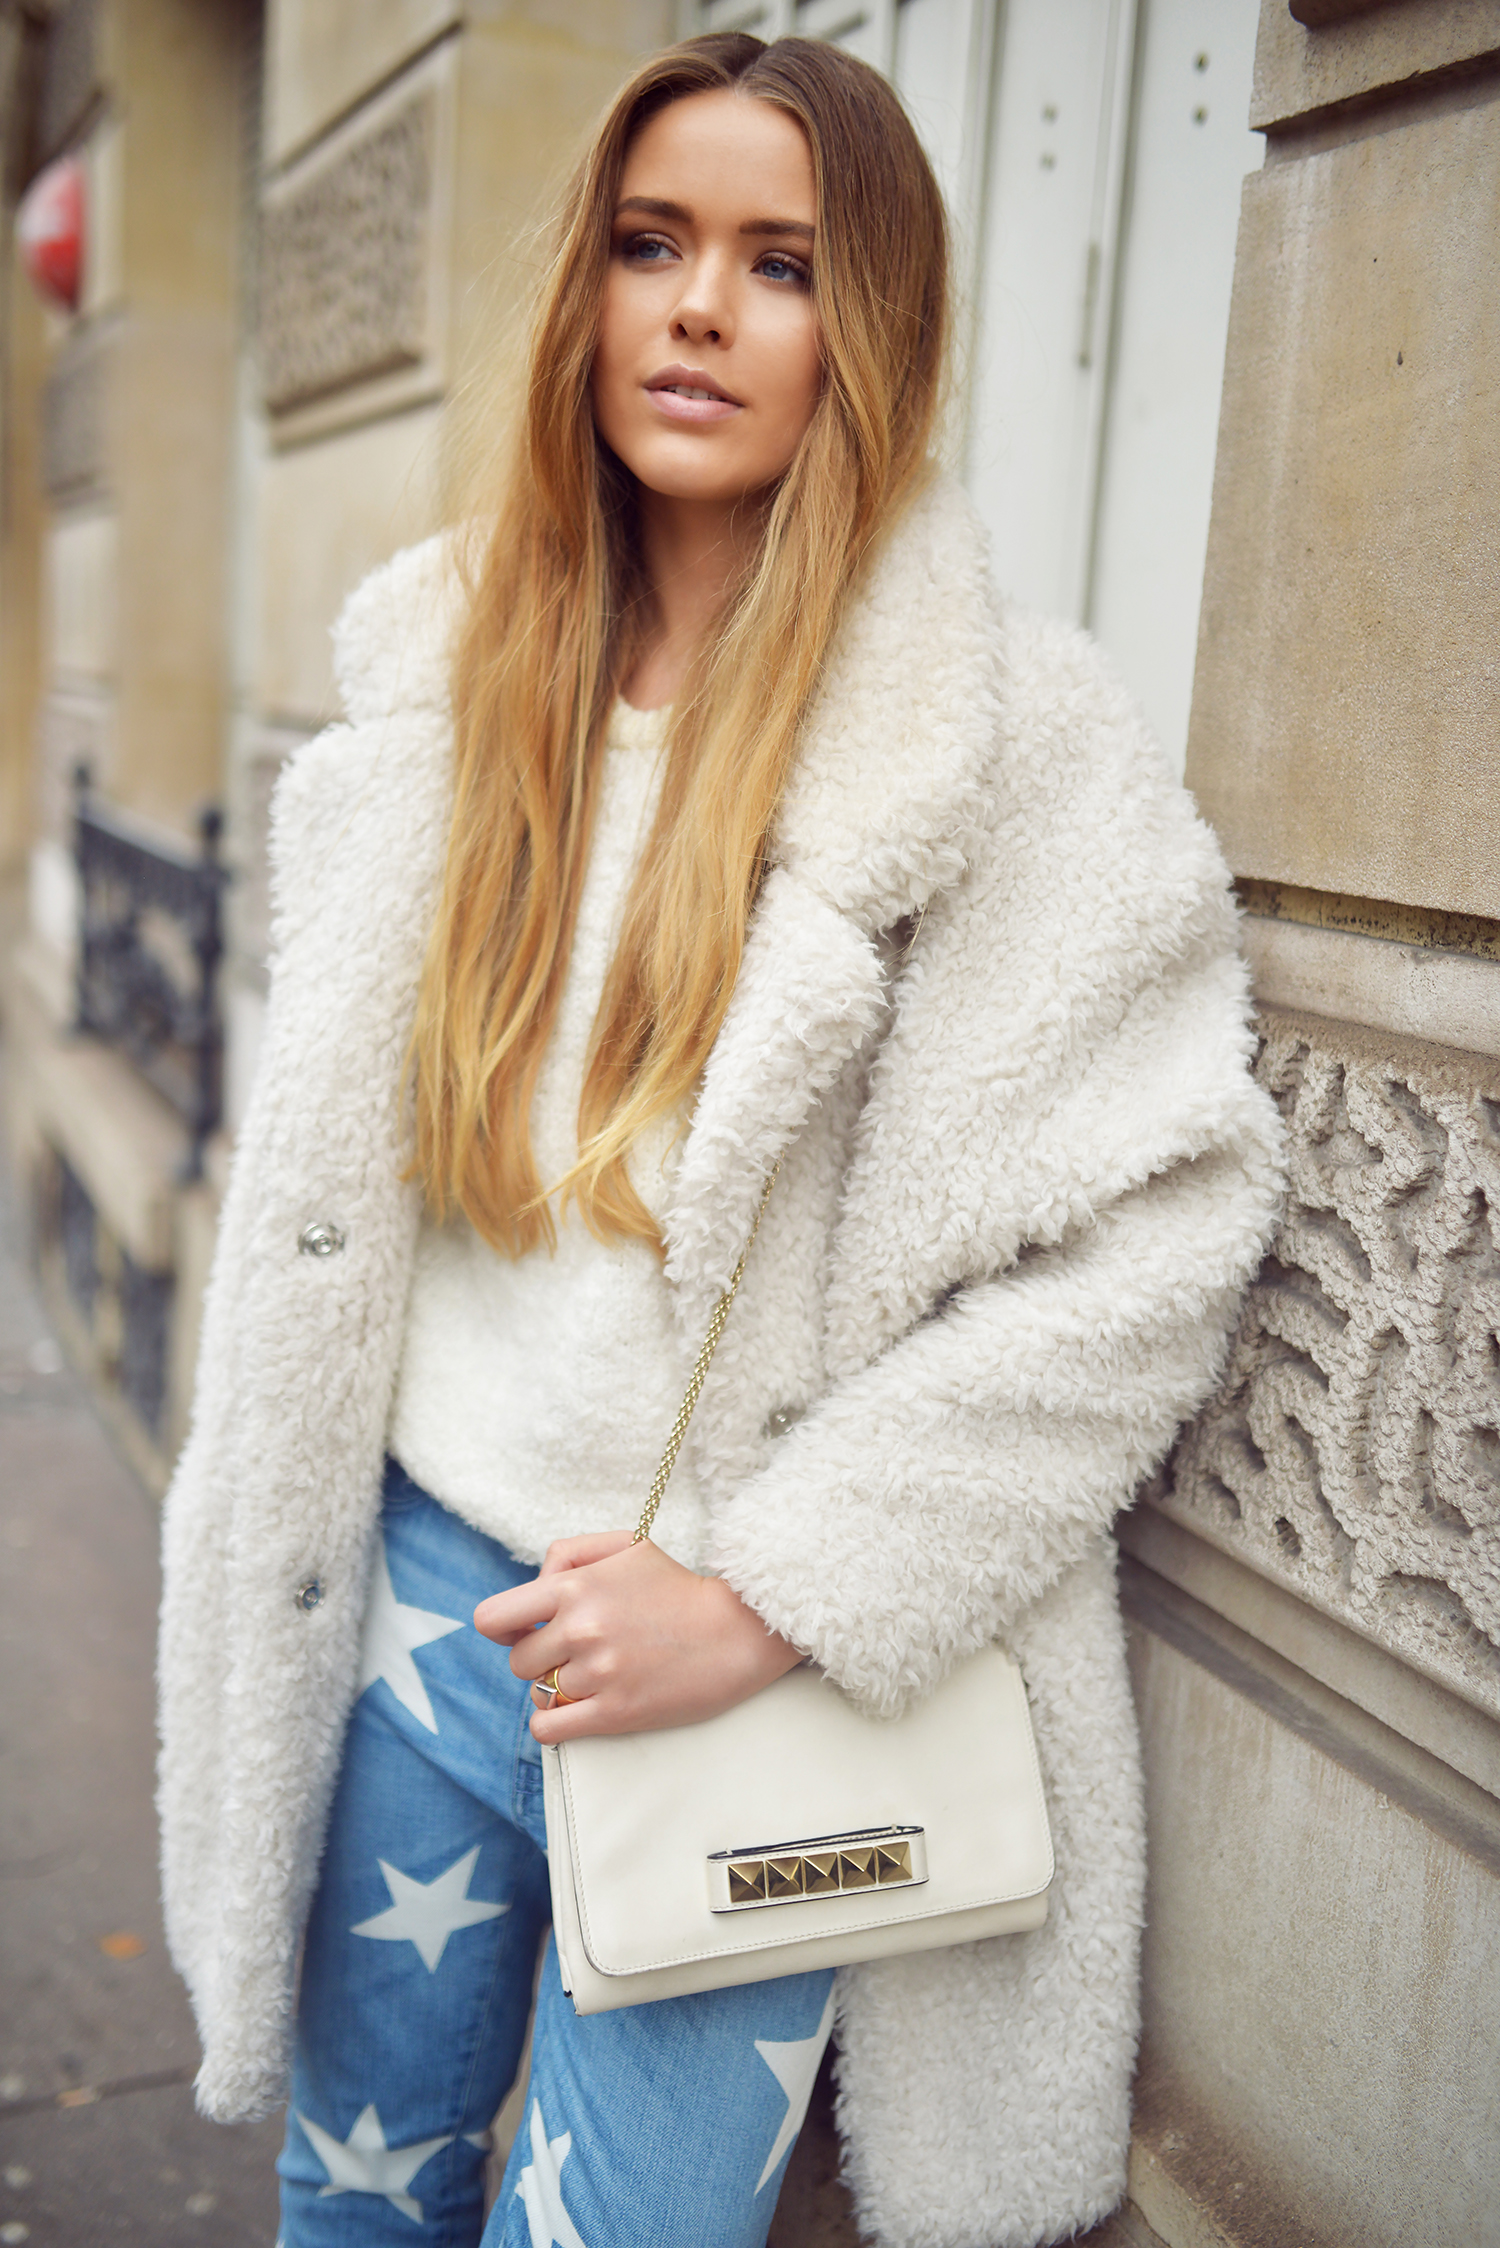 Kristina Bazan is wearing a fluffy white coat from Gérard Darel